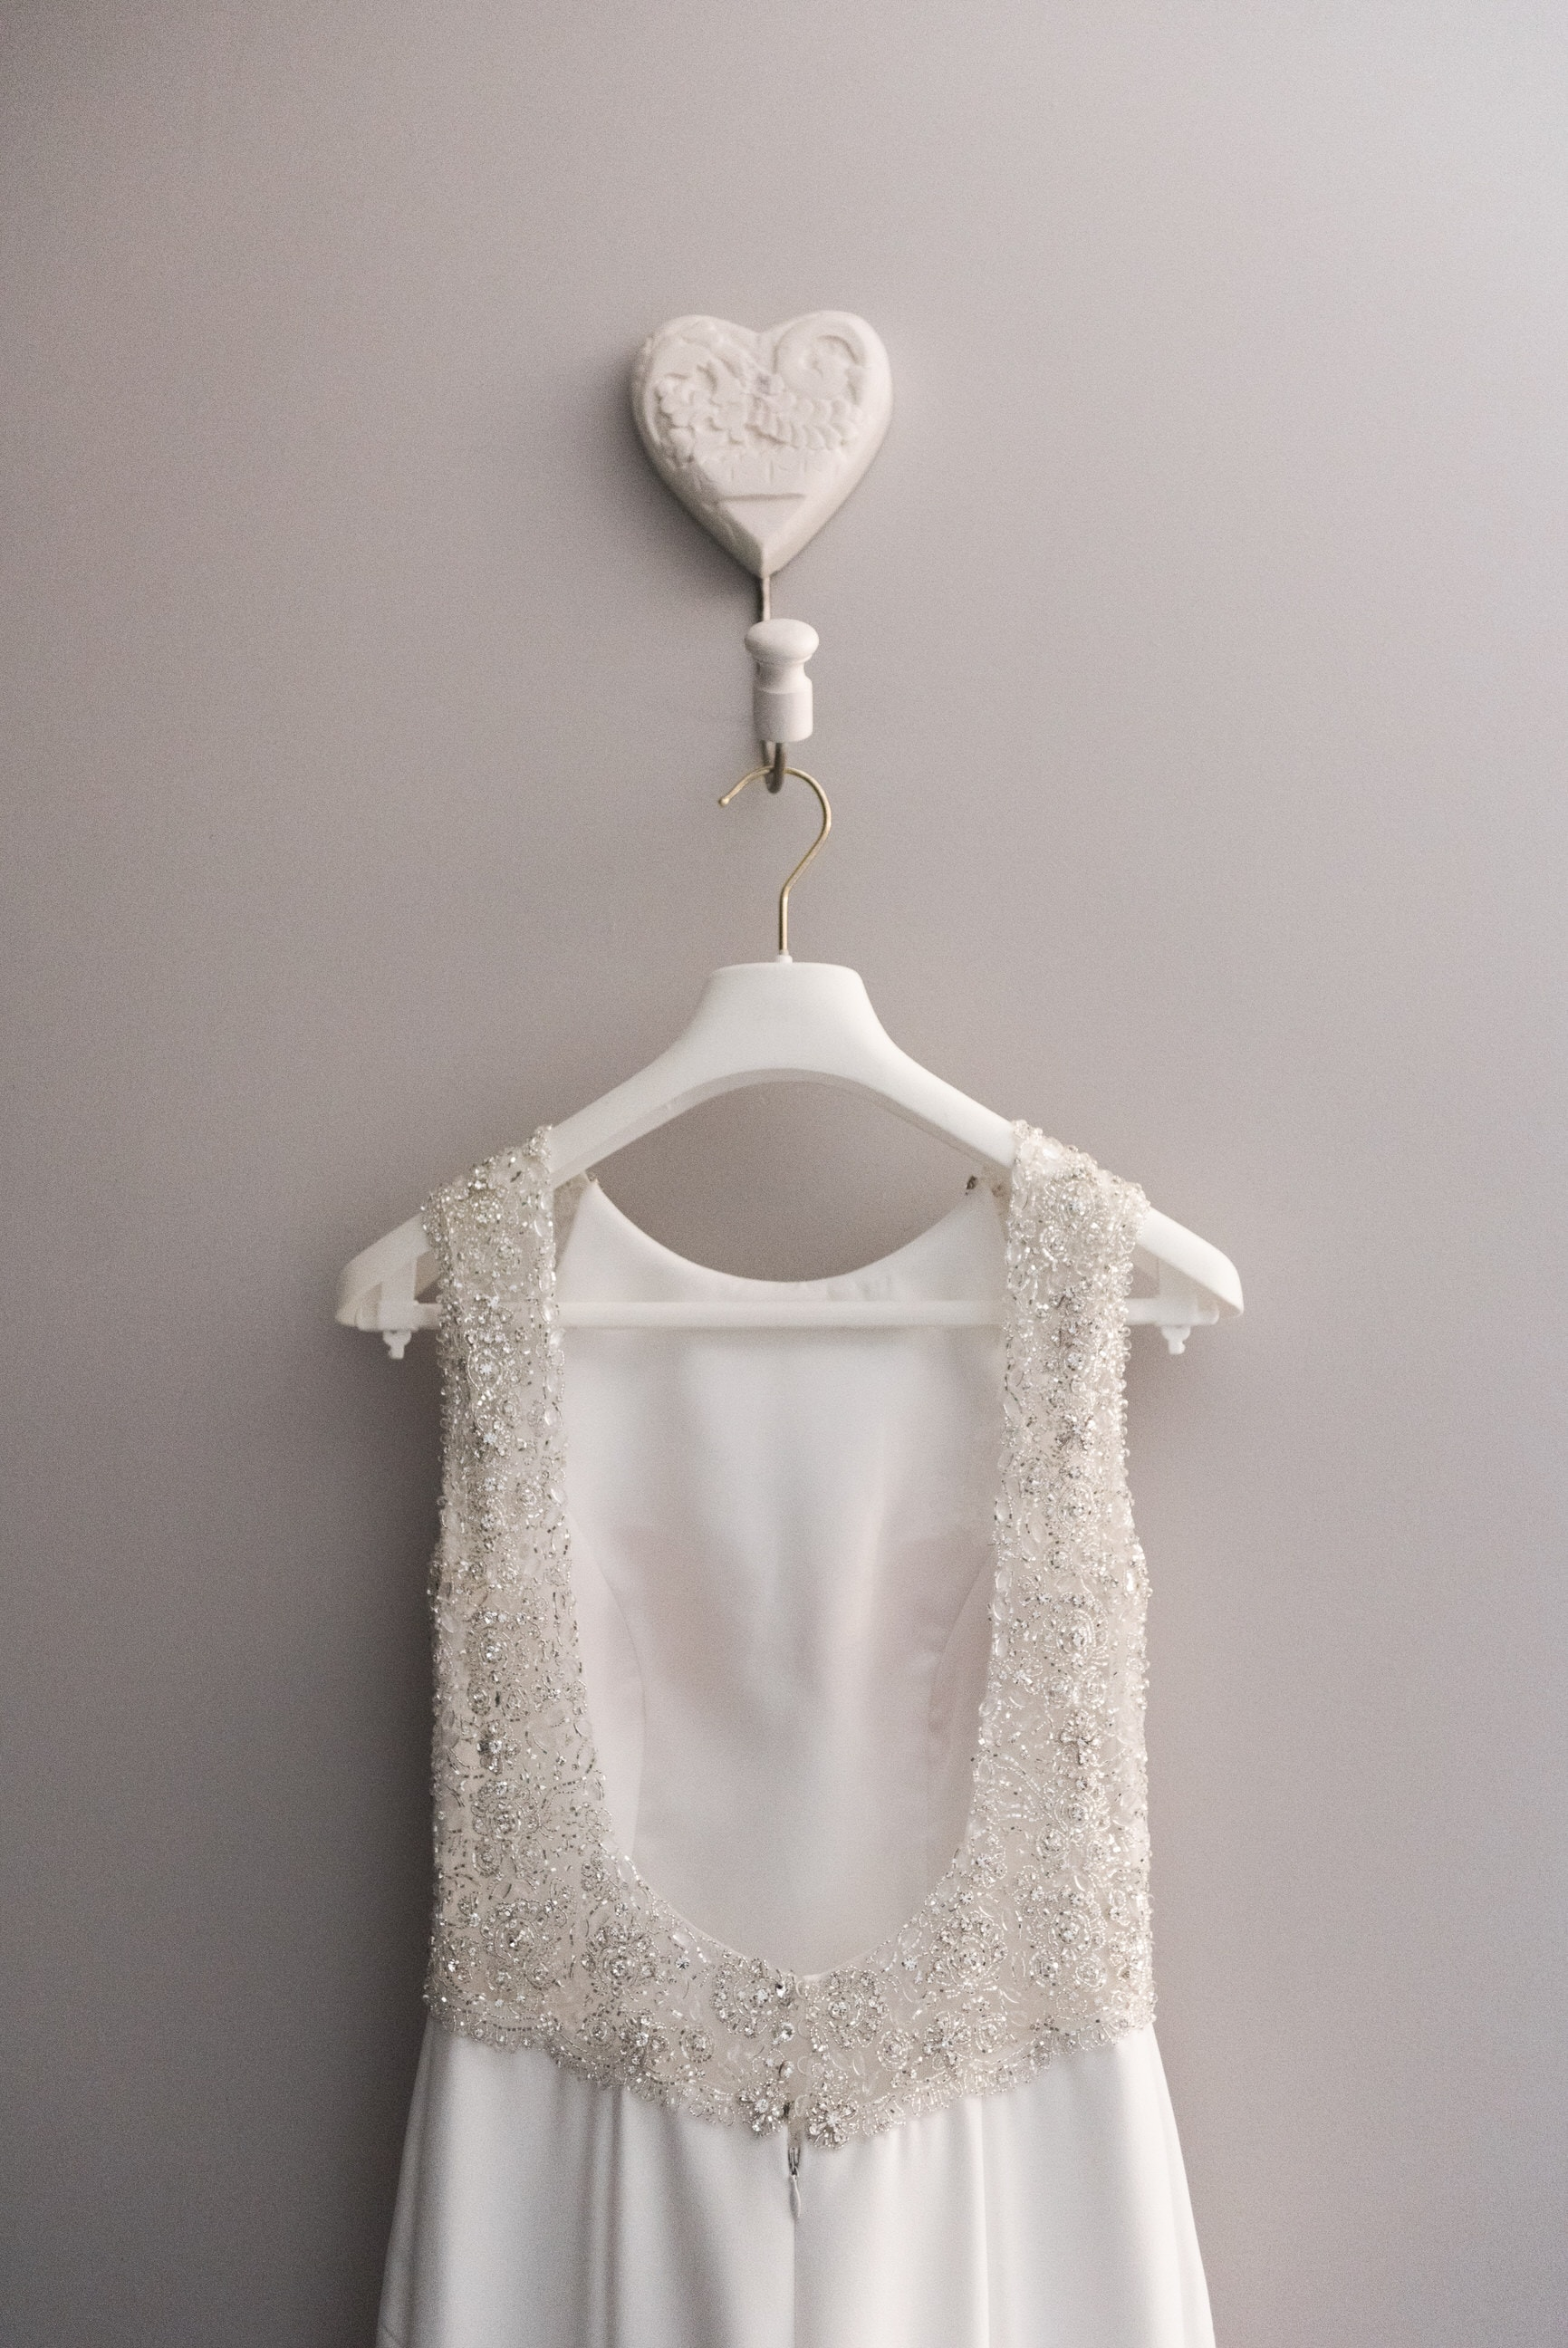 Wedding dress hung on hanger